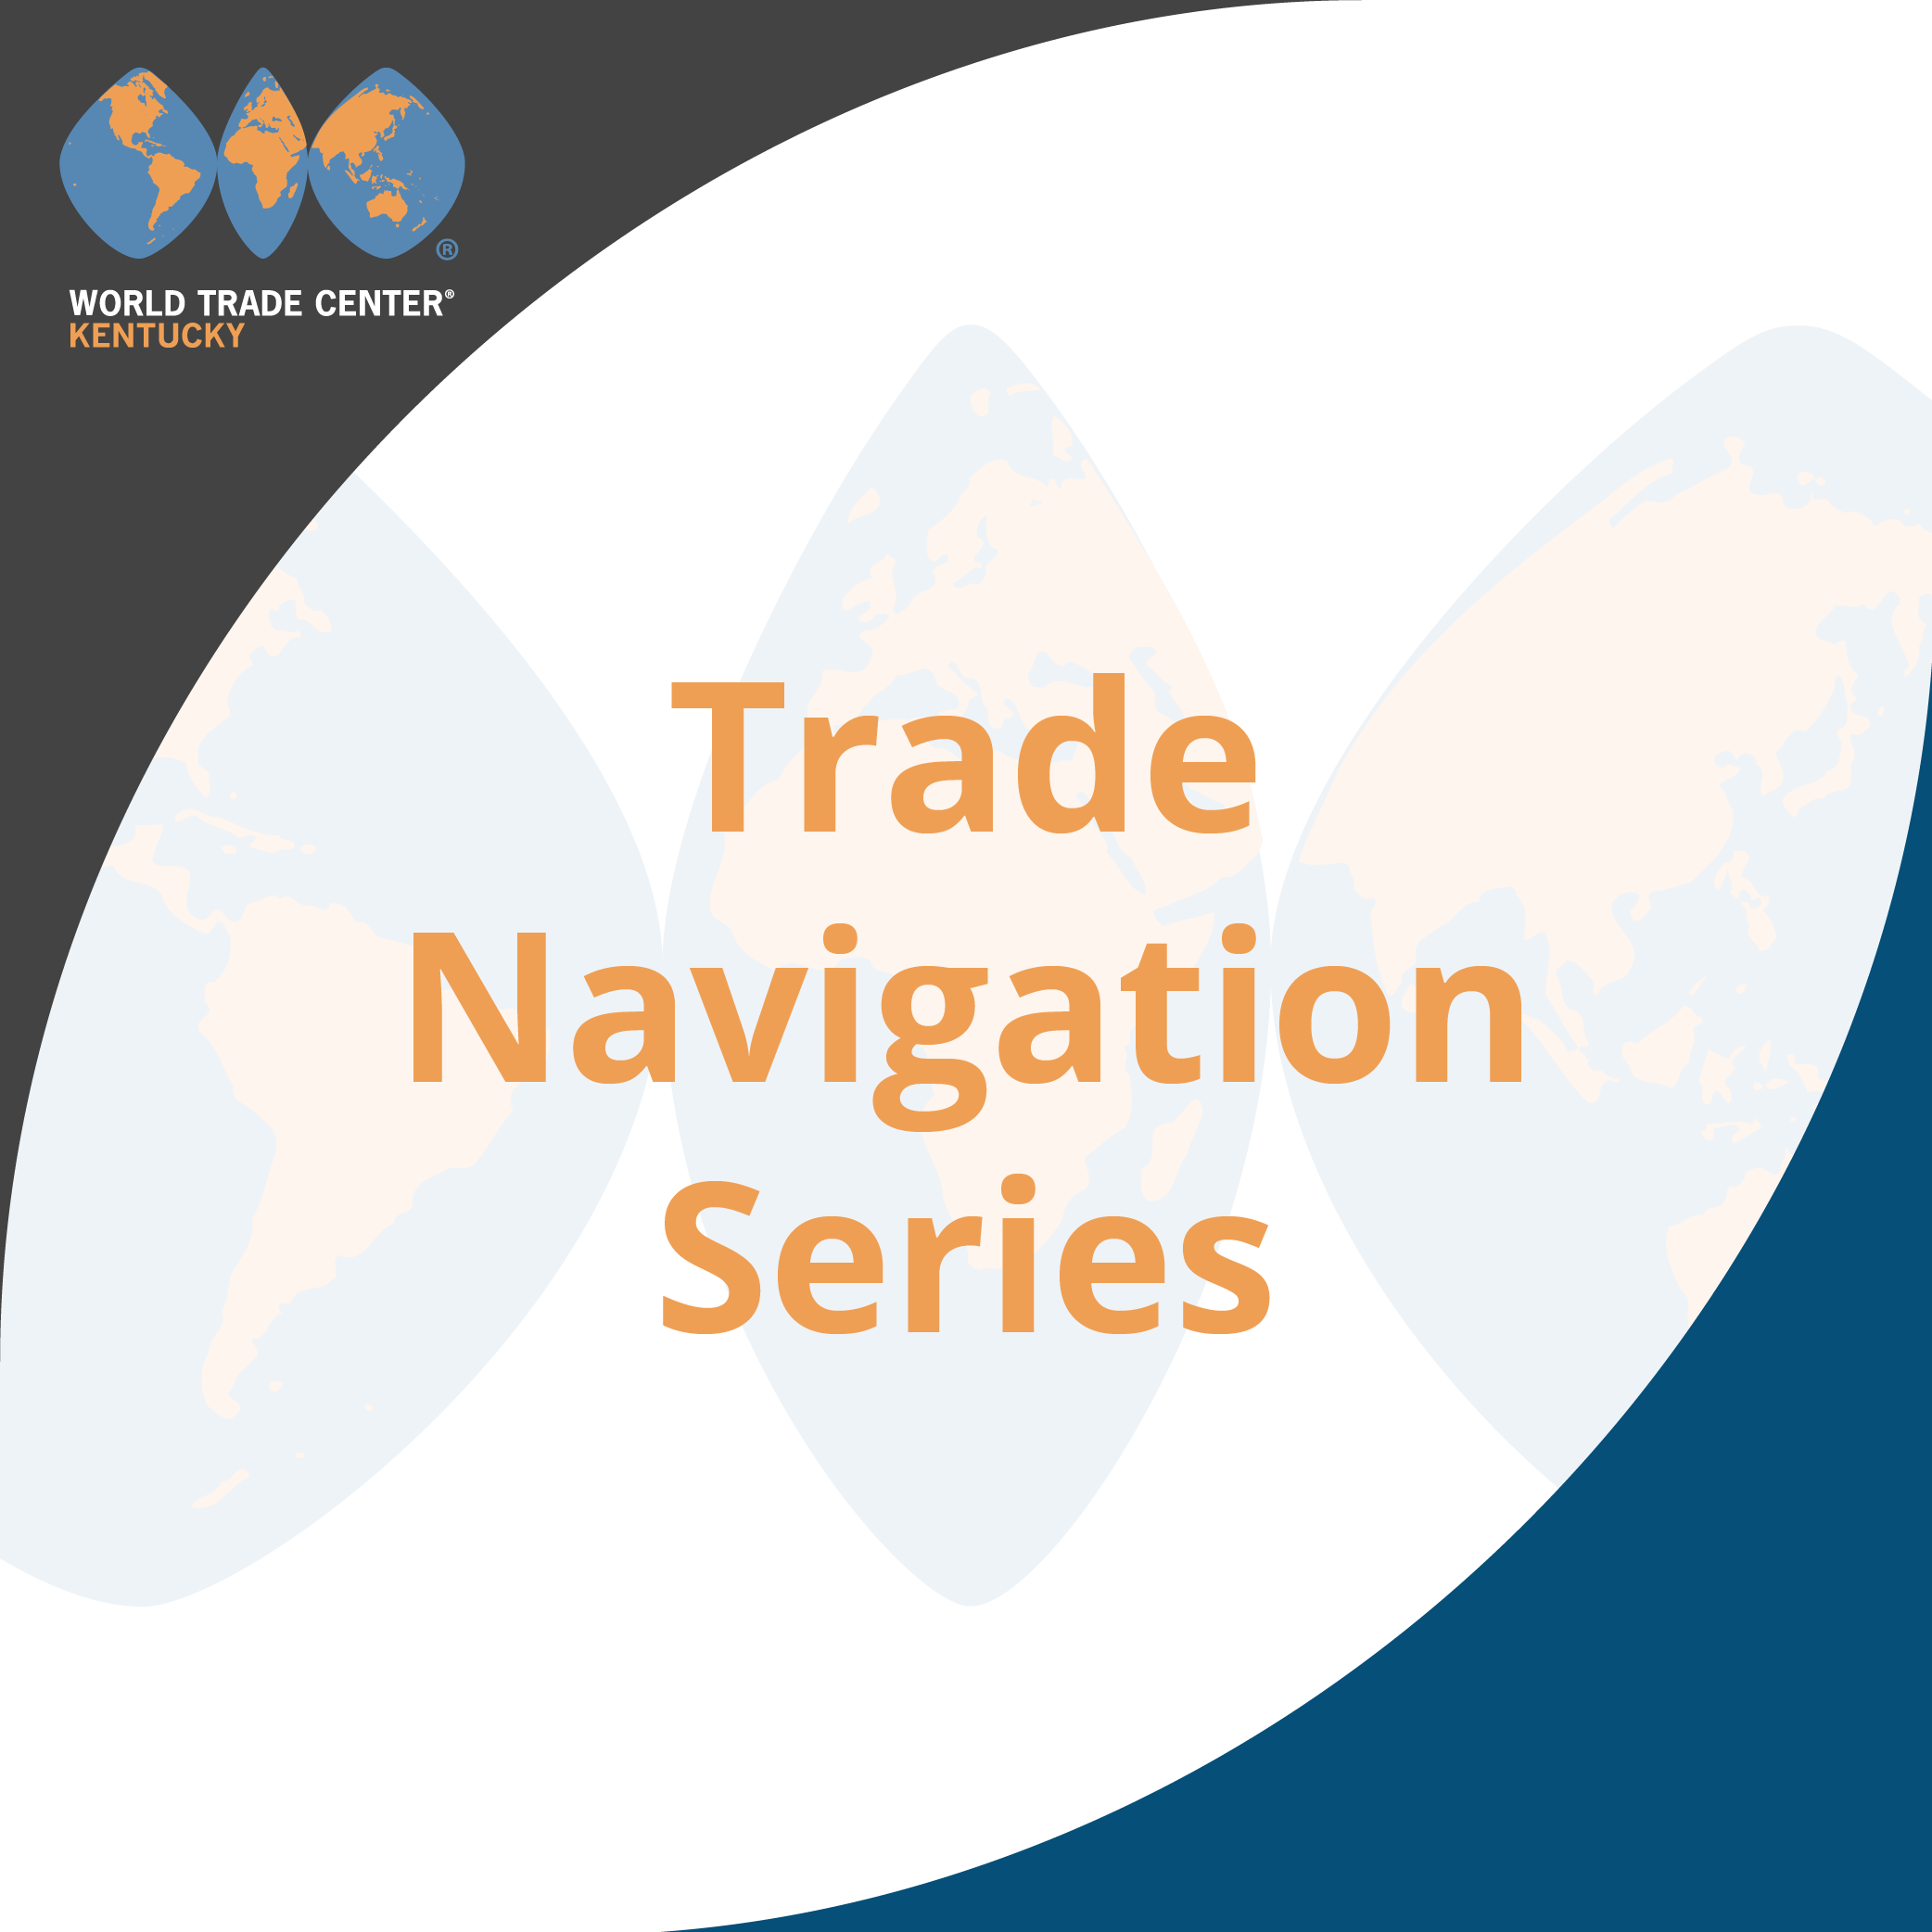 Trade Navigation Series